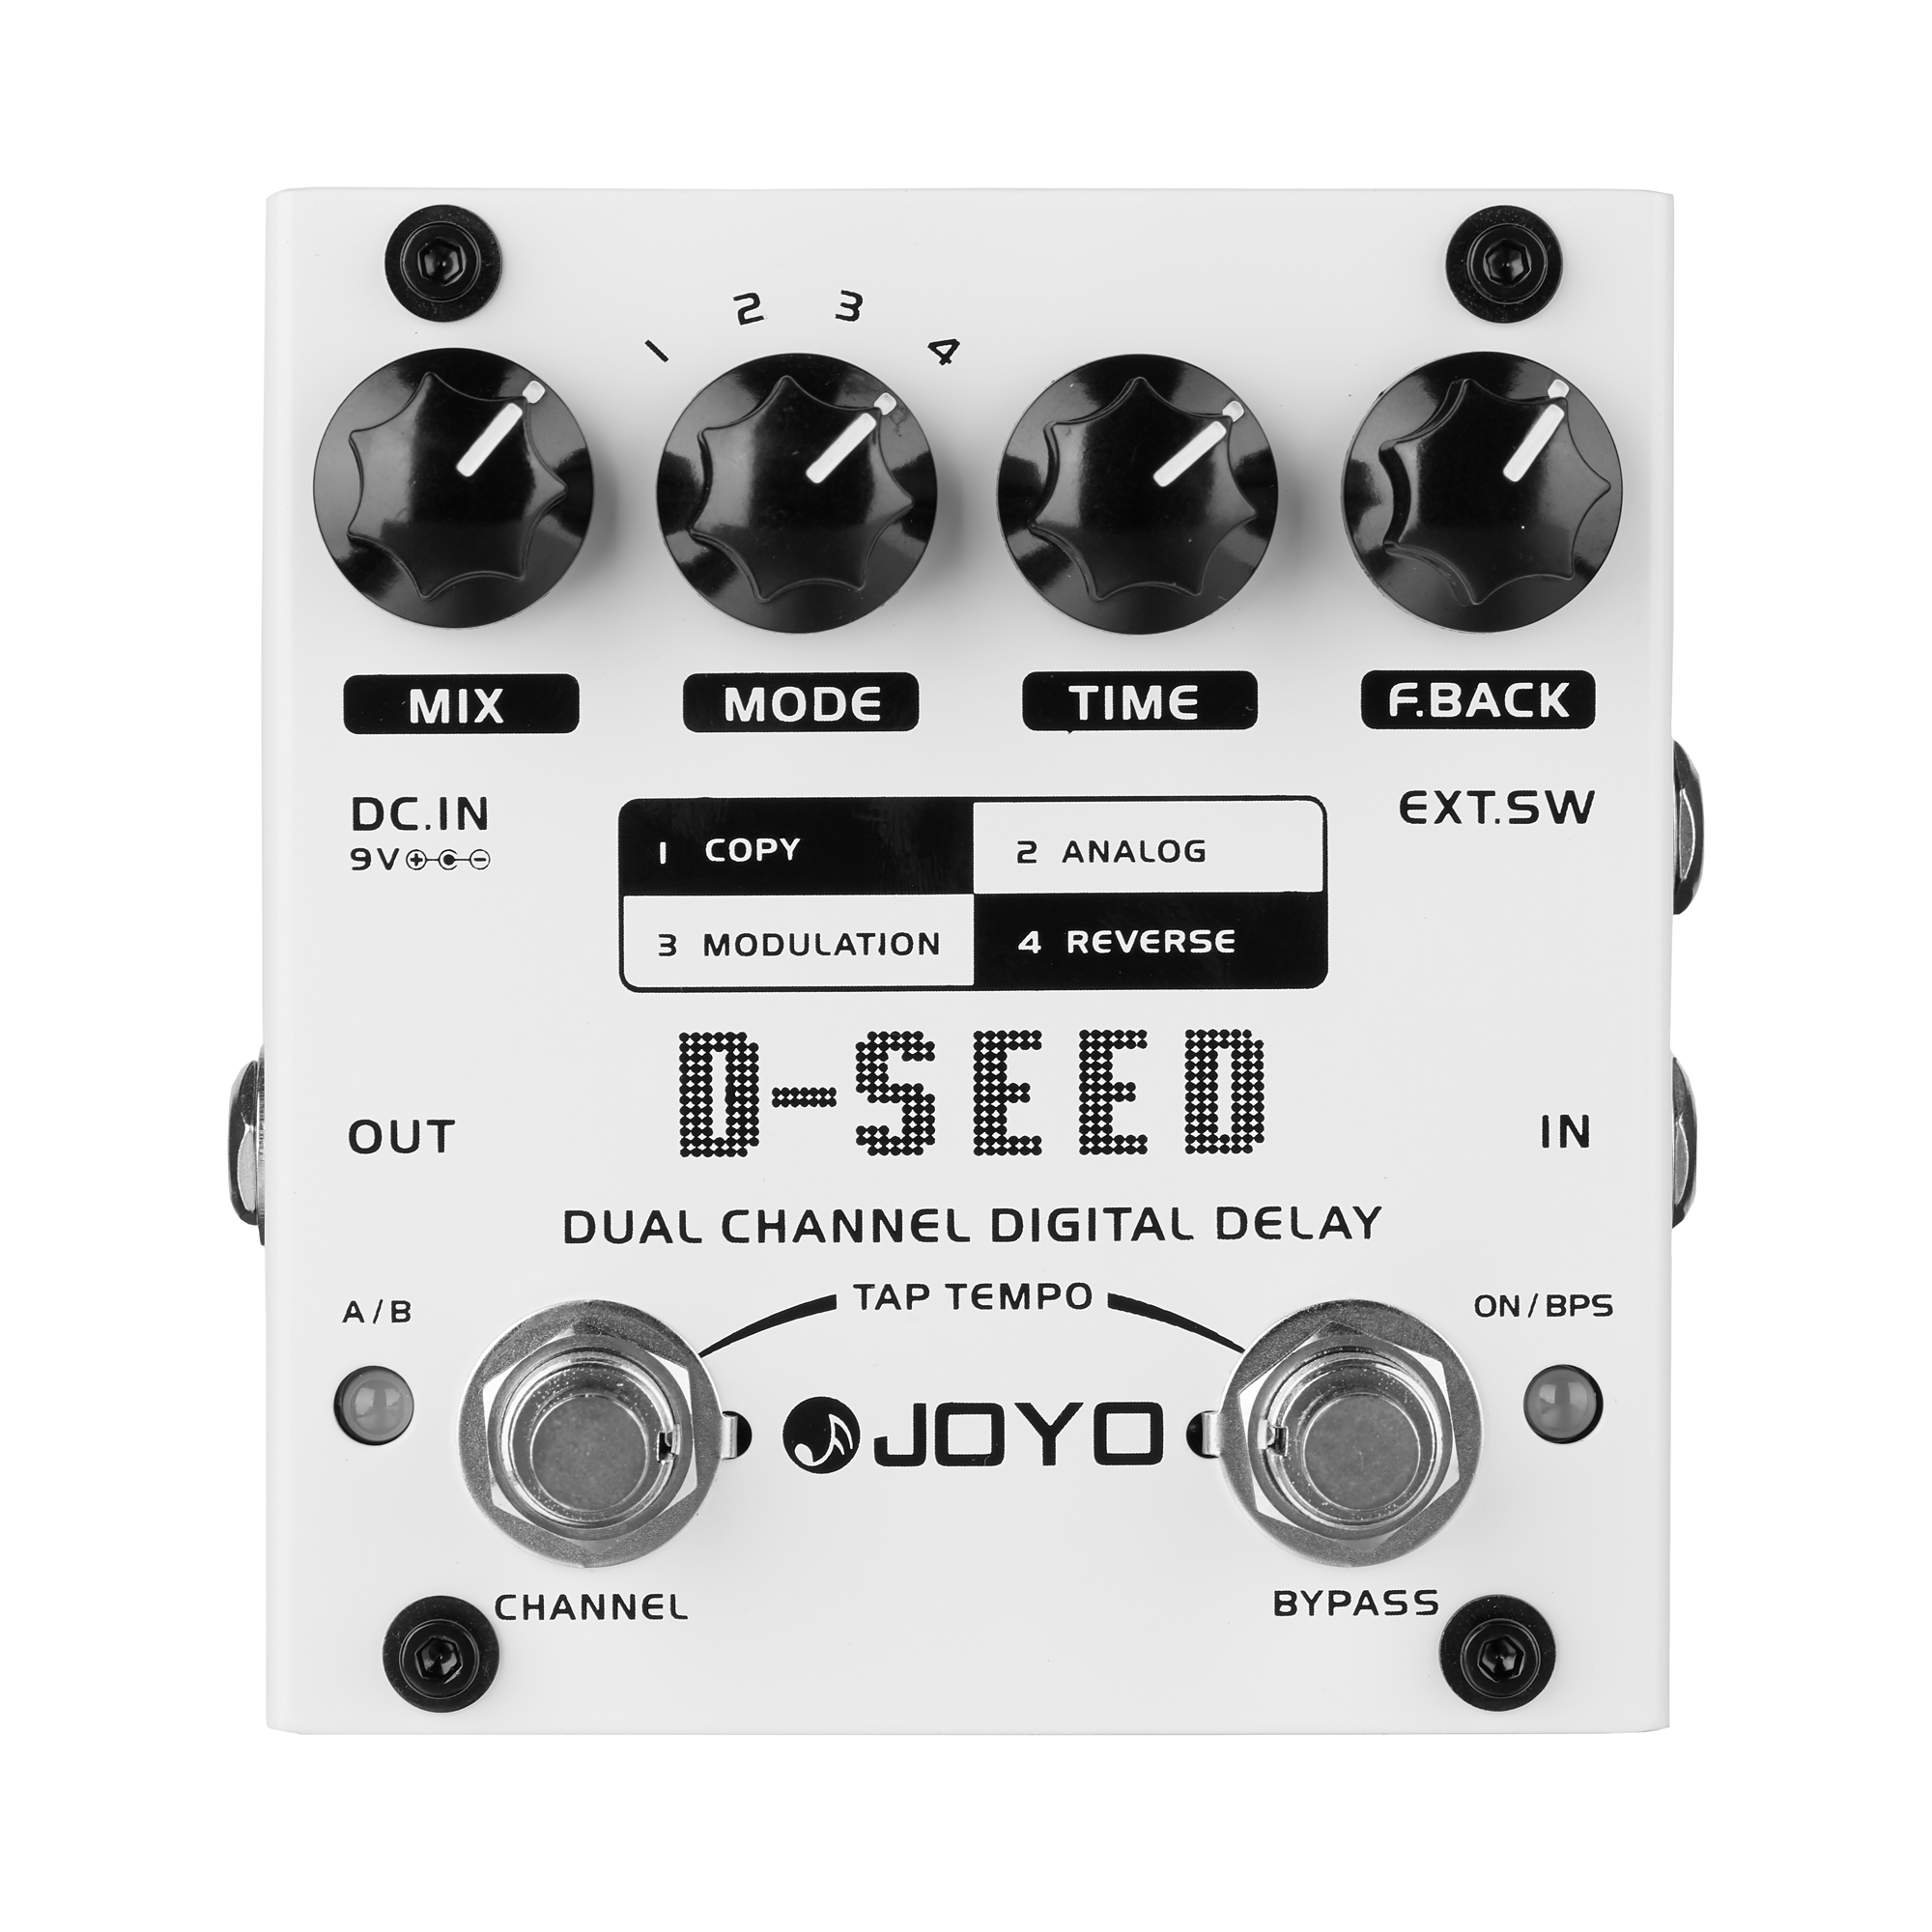 JOYO Dual Channel Digital Delay Guitar Effects Pedal D-SEED Guitarra Stompbox Four ModesJOYO Dual Channel Digital Delay Guitar Effects Pedal D-SEED Guitarra Stompbox Four Modes